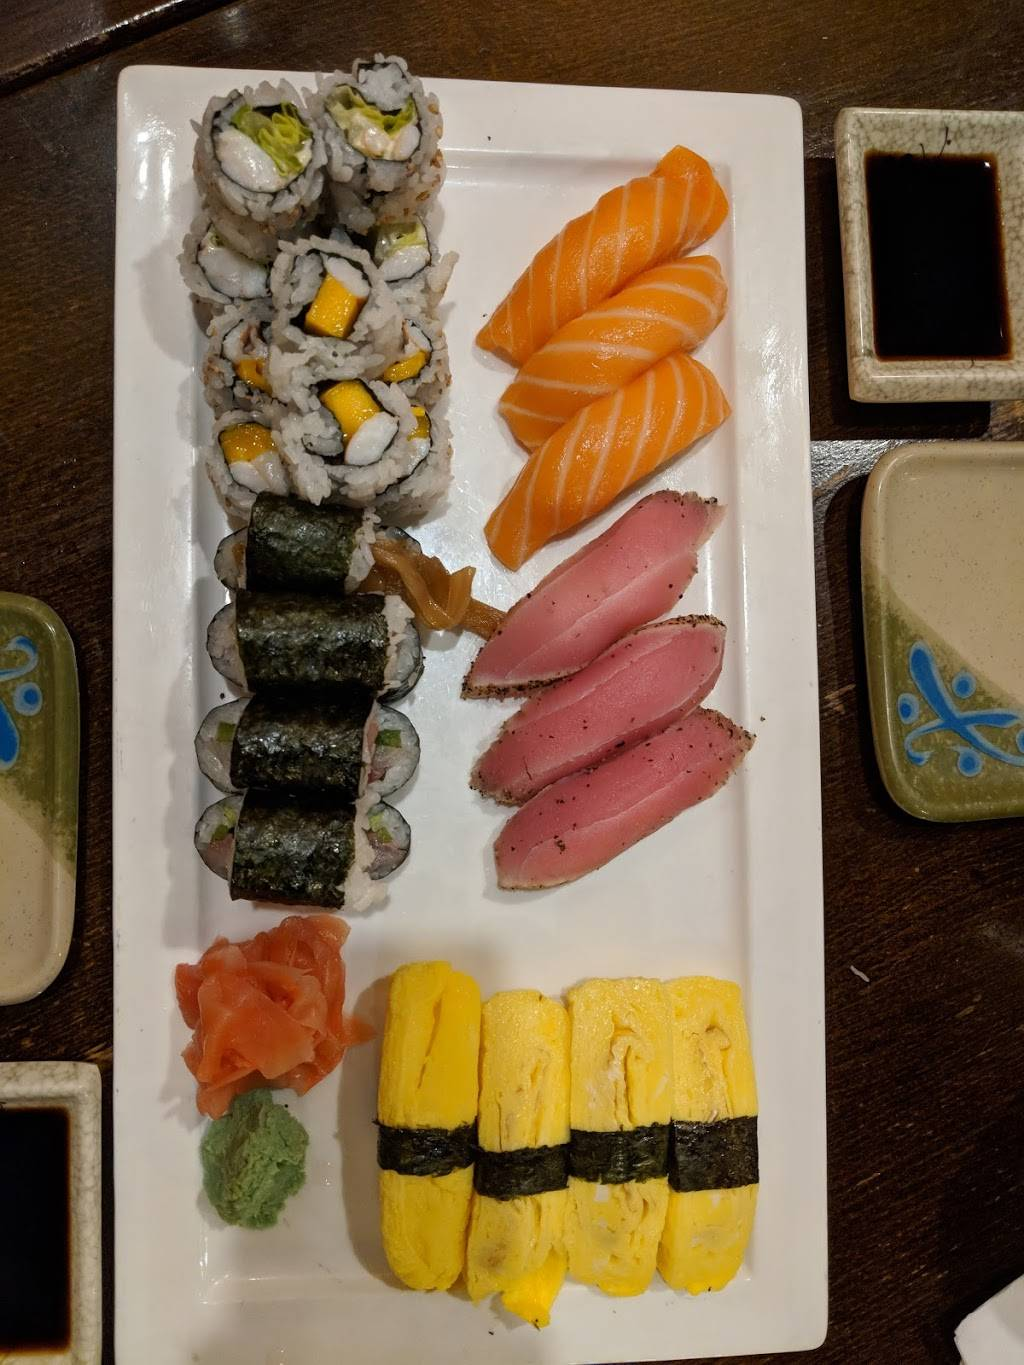 Ginza Hibachi & Japanese Fusion Cuisine | restaurant | 296 5th Ave, Brooklyn, NY 11215, USA | 7183691021 OR +1 718-369-1021